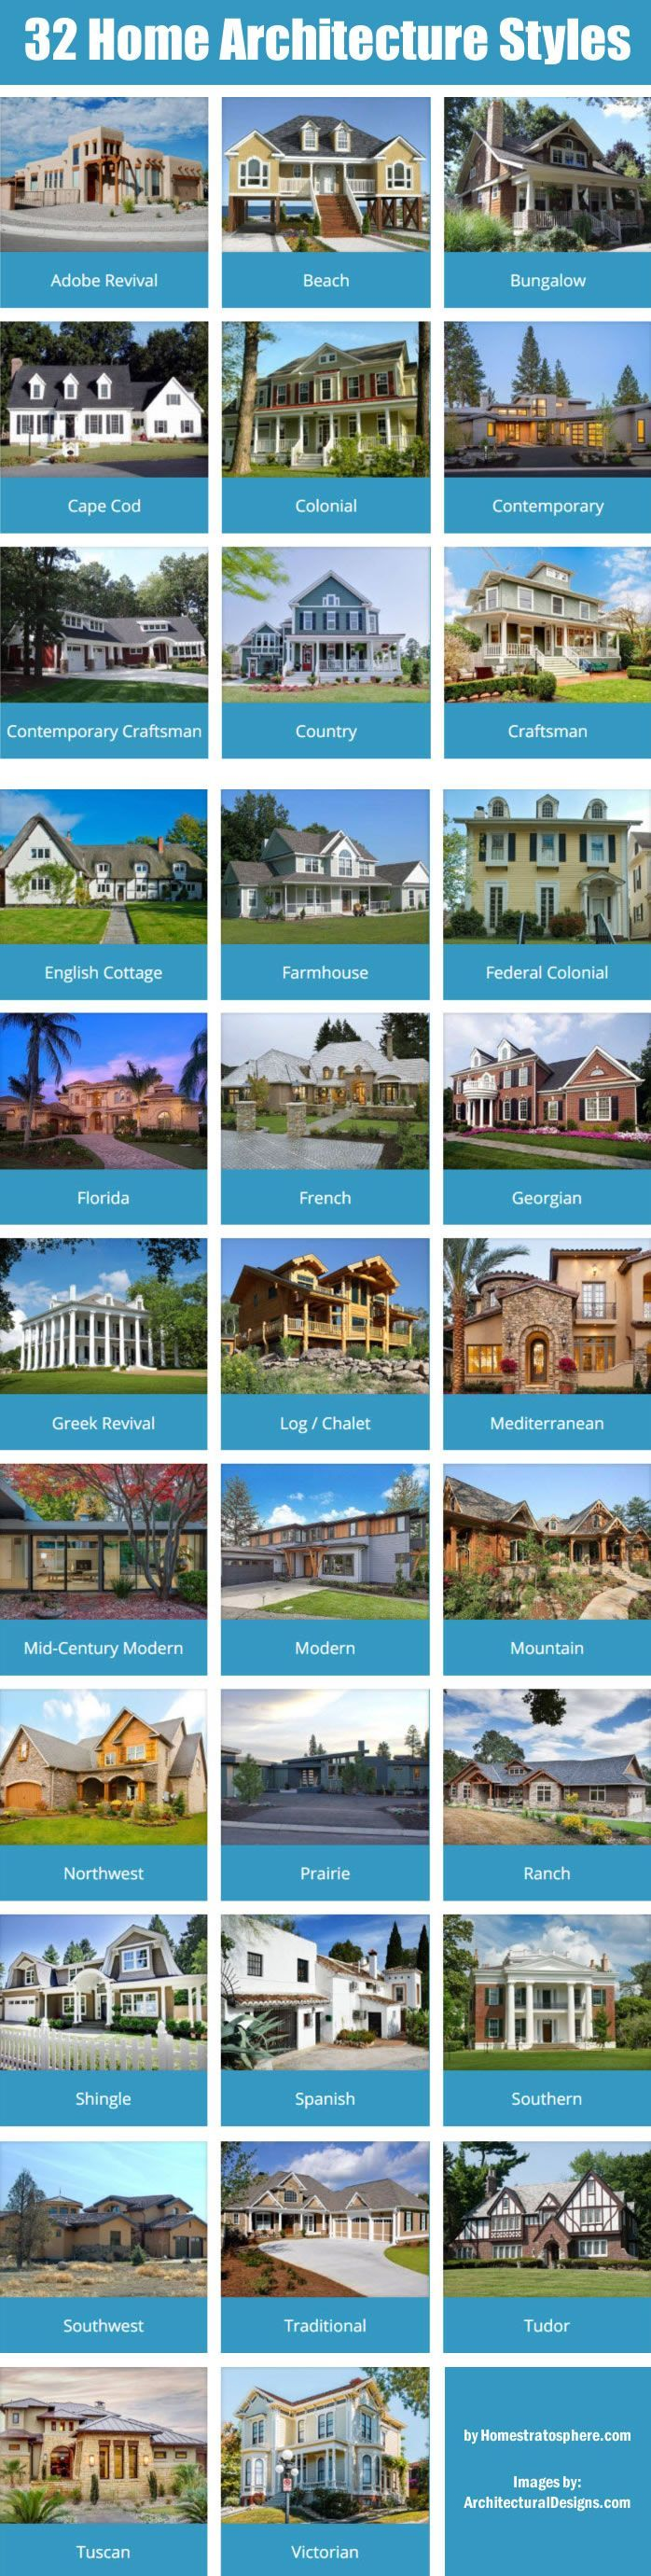 Extensive collection of 32 different types of home architecture styles and designs. Find out what style of home you like best. Also take our poll and see what o